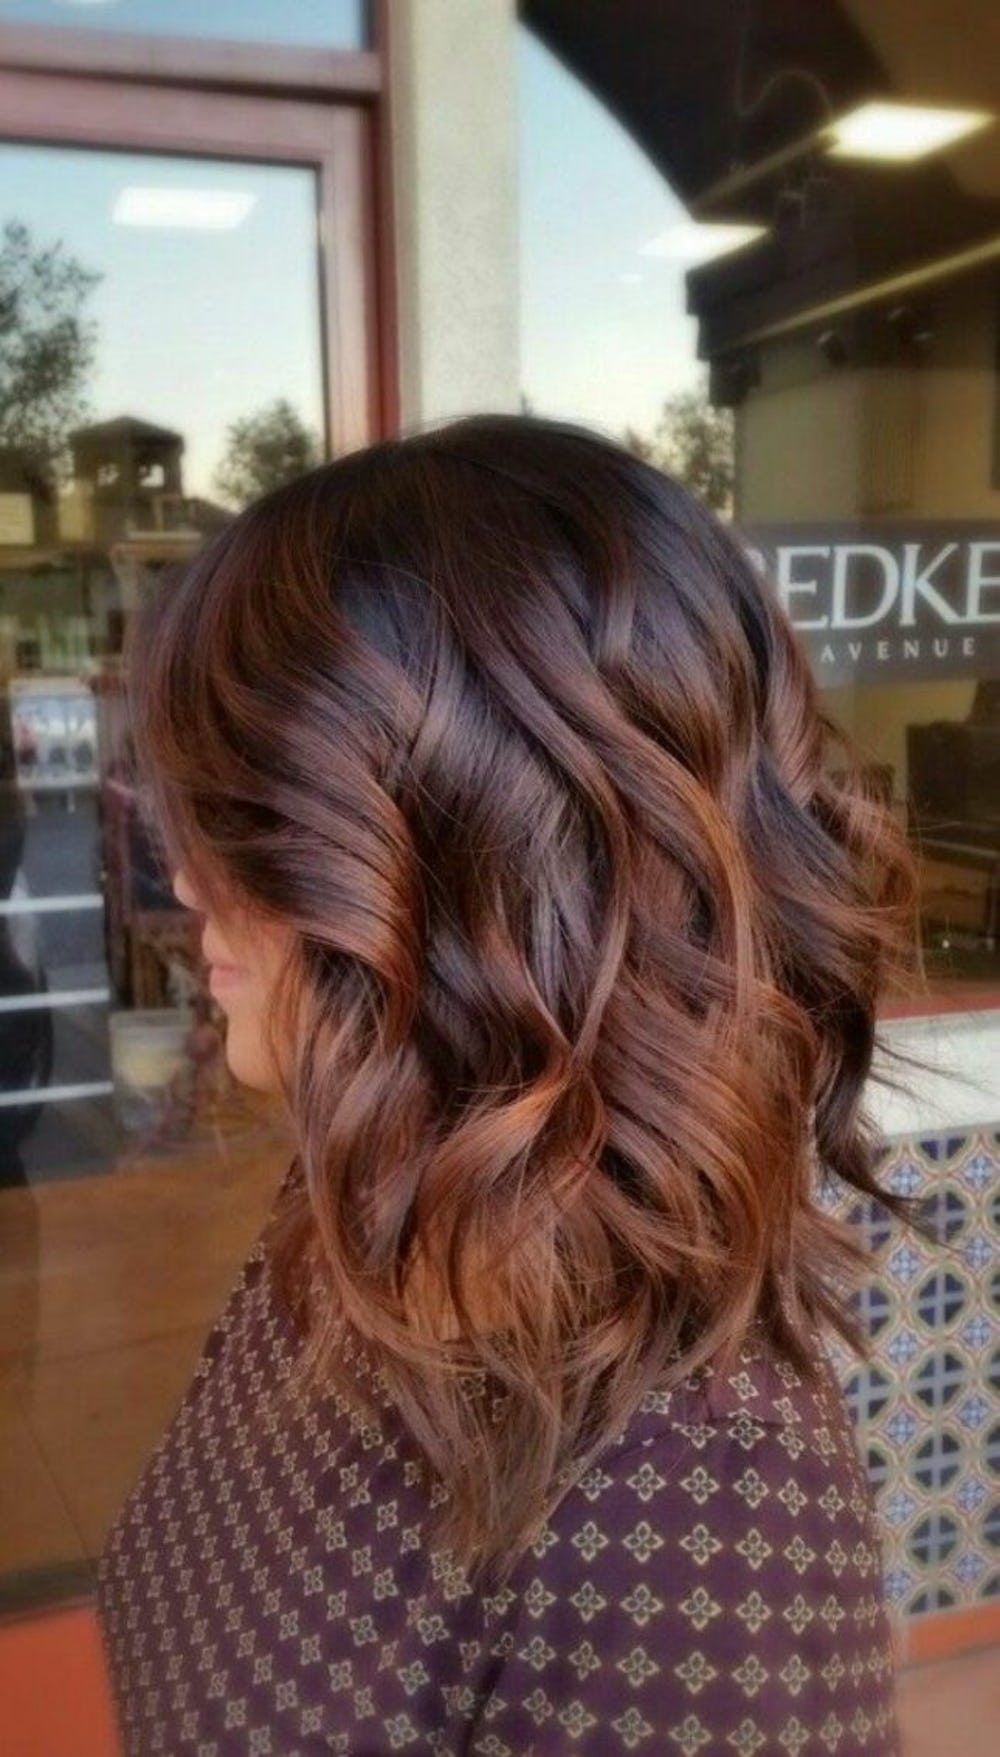 Balayage is Instagram's Favorite Fall Hair Color T